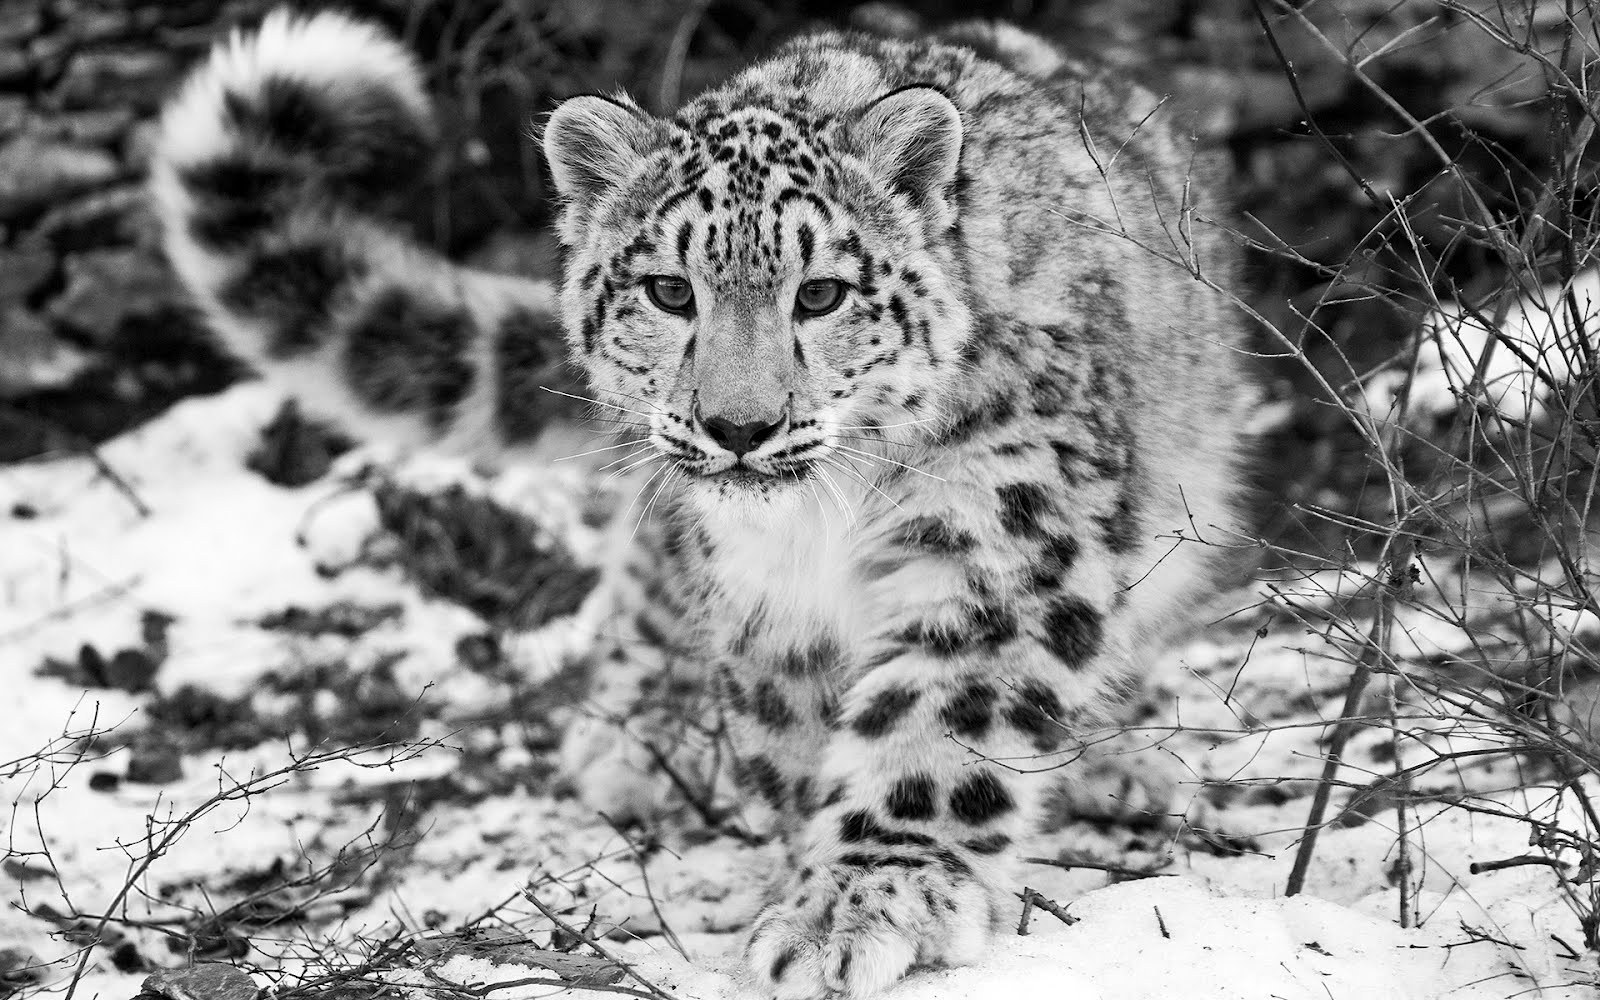 animal-tiger-snow